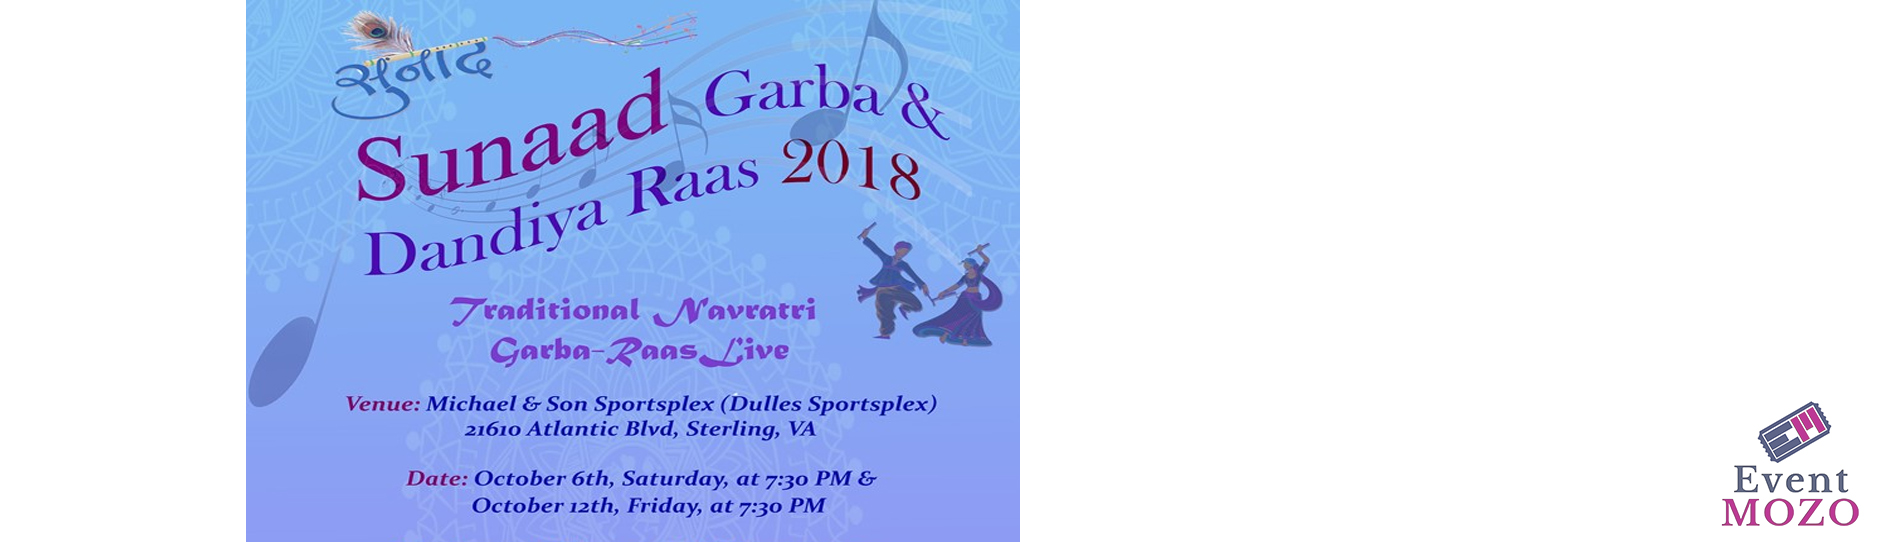 EventMozo Sunaad Navratri Garba & Dandiya Raas 2018 - Live on Friday....